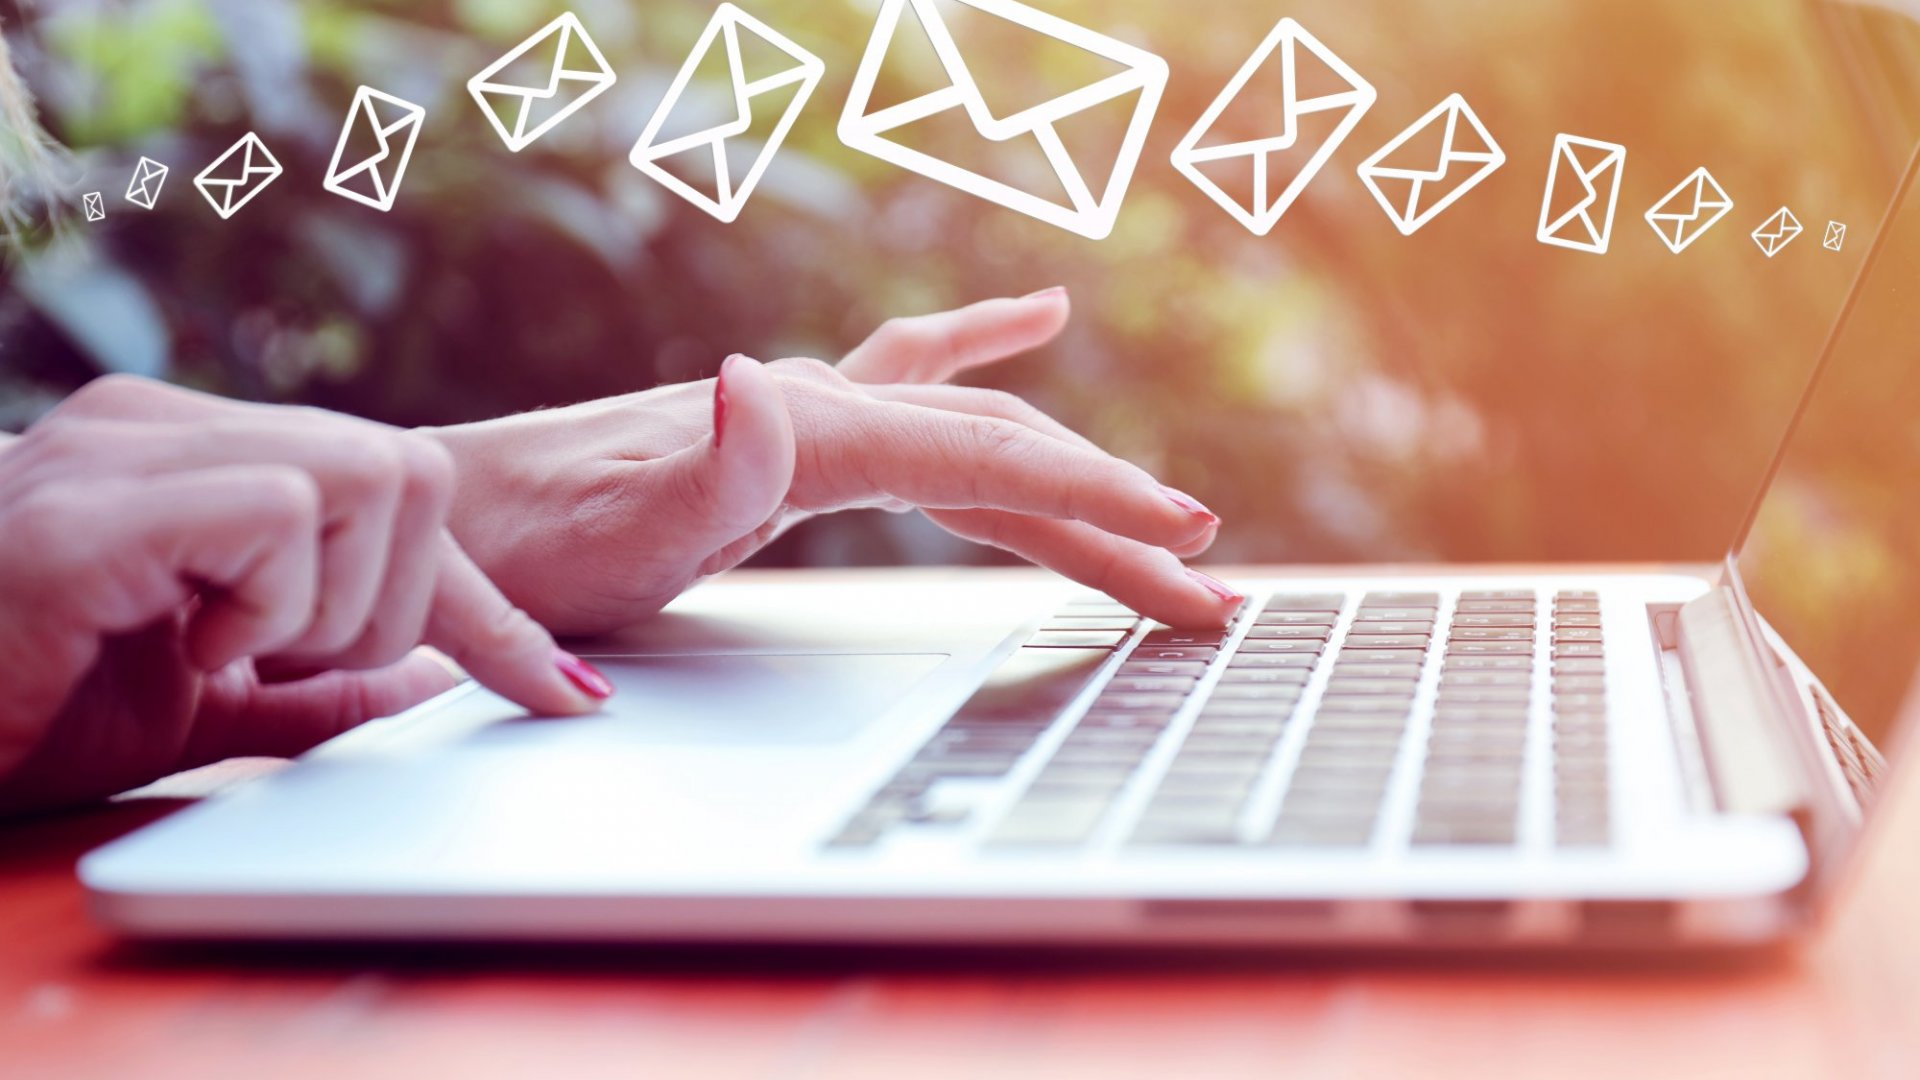 4 Simple (but Brilliant) Tricks for Managing a Messy Email Inbox